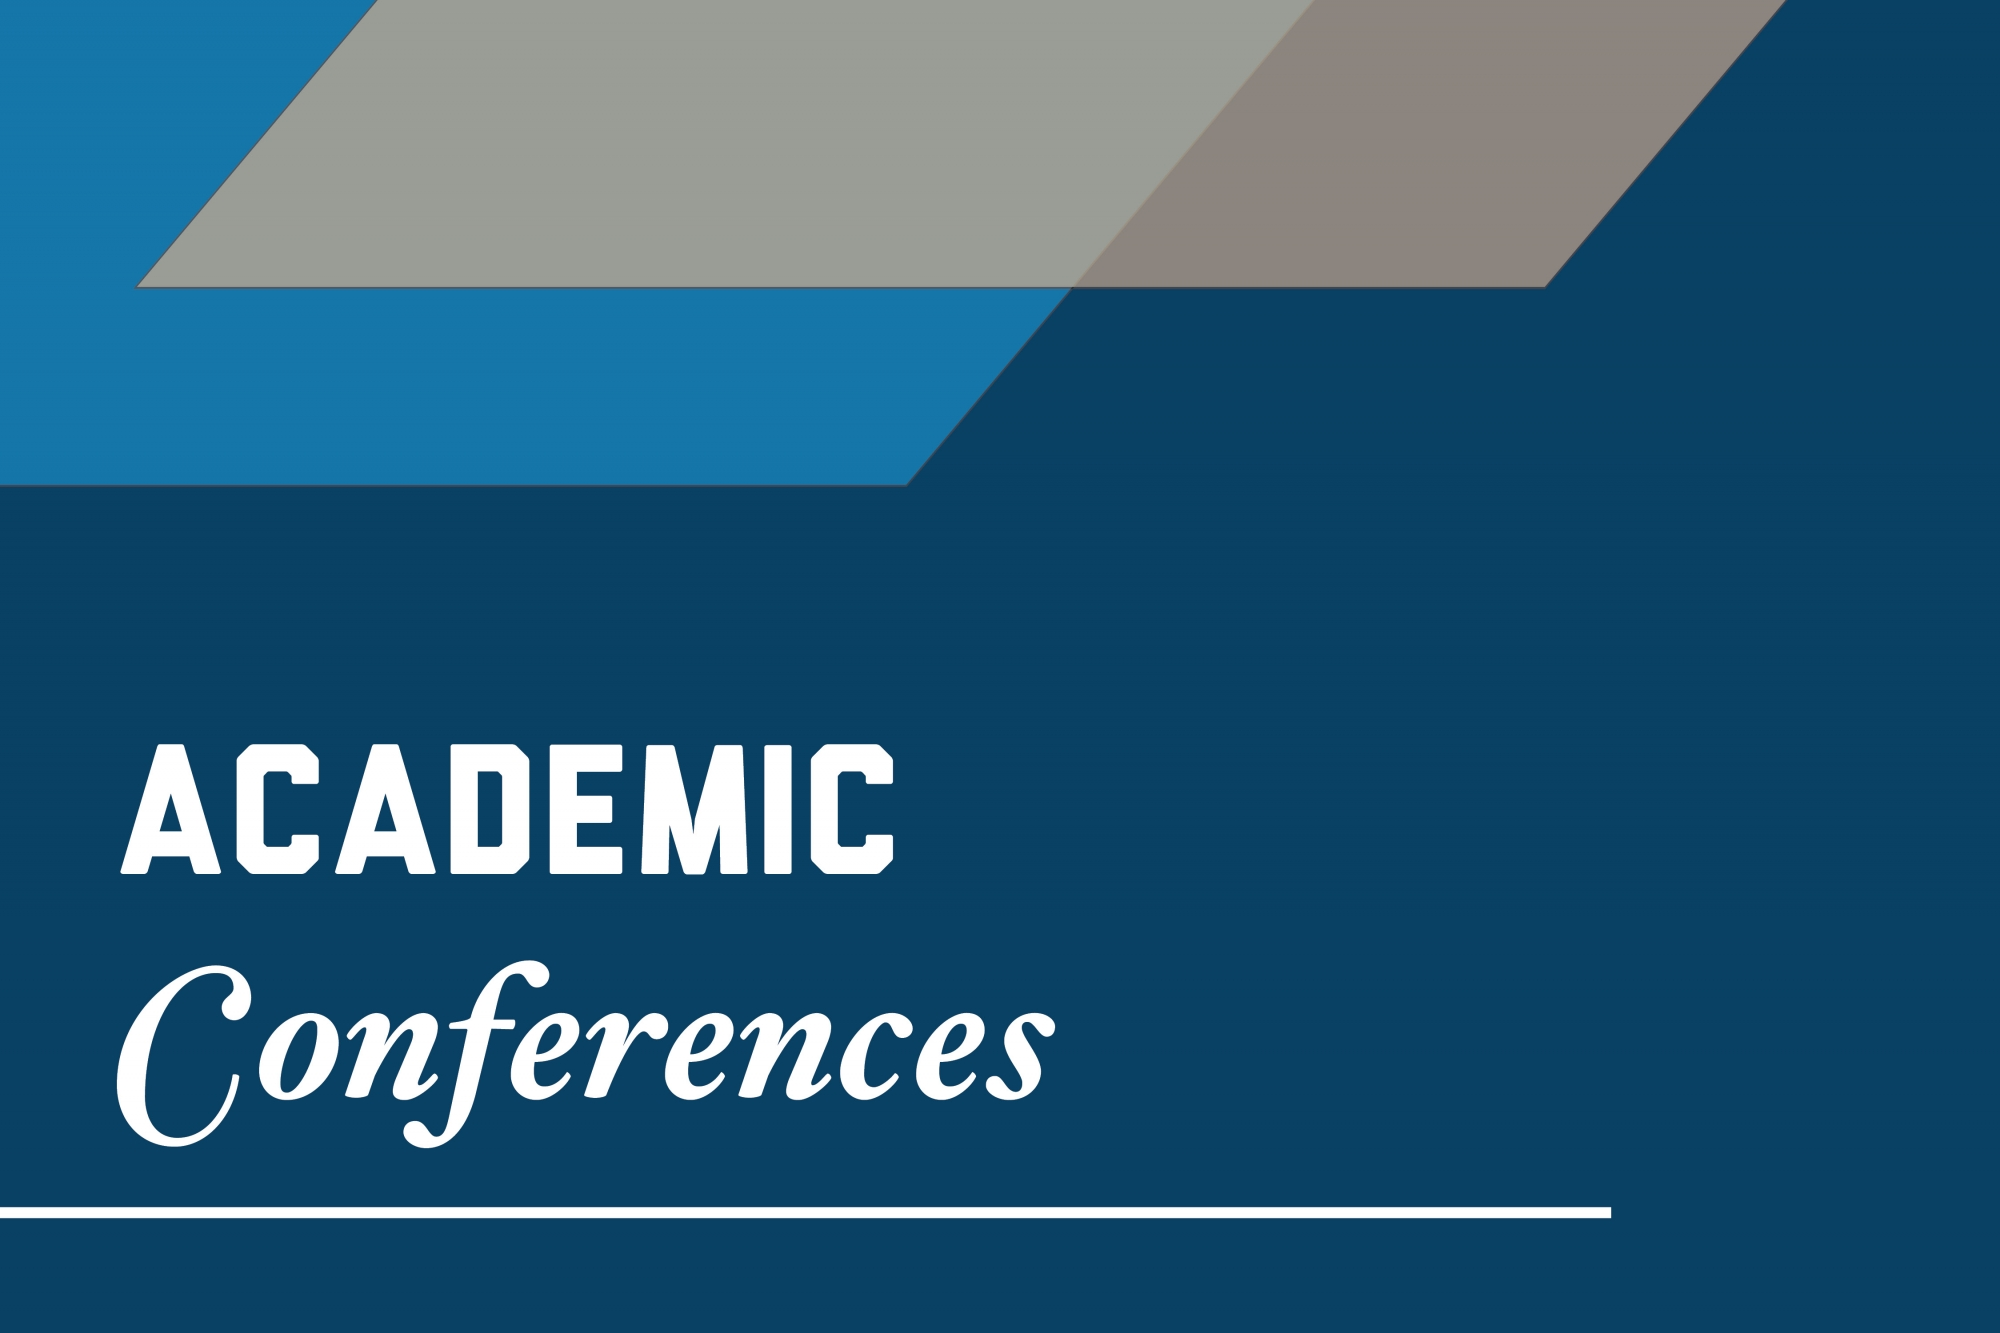 Graphic: Academic conferences